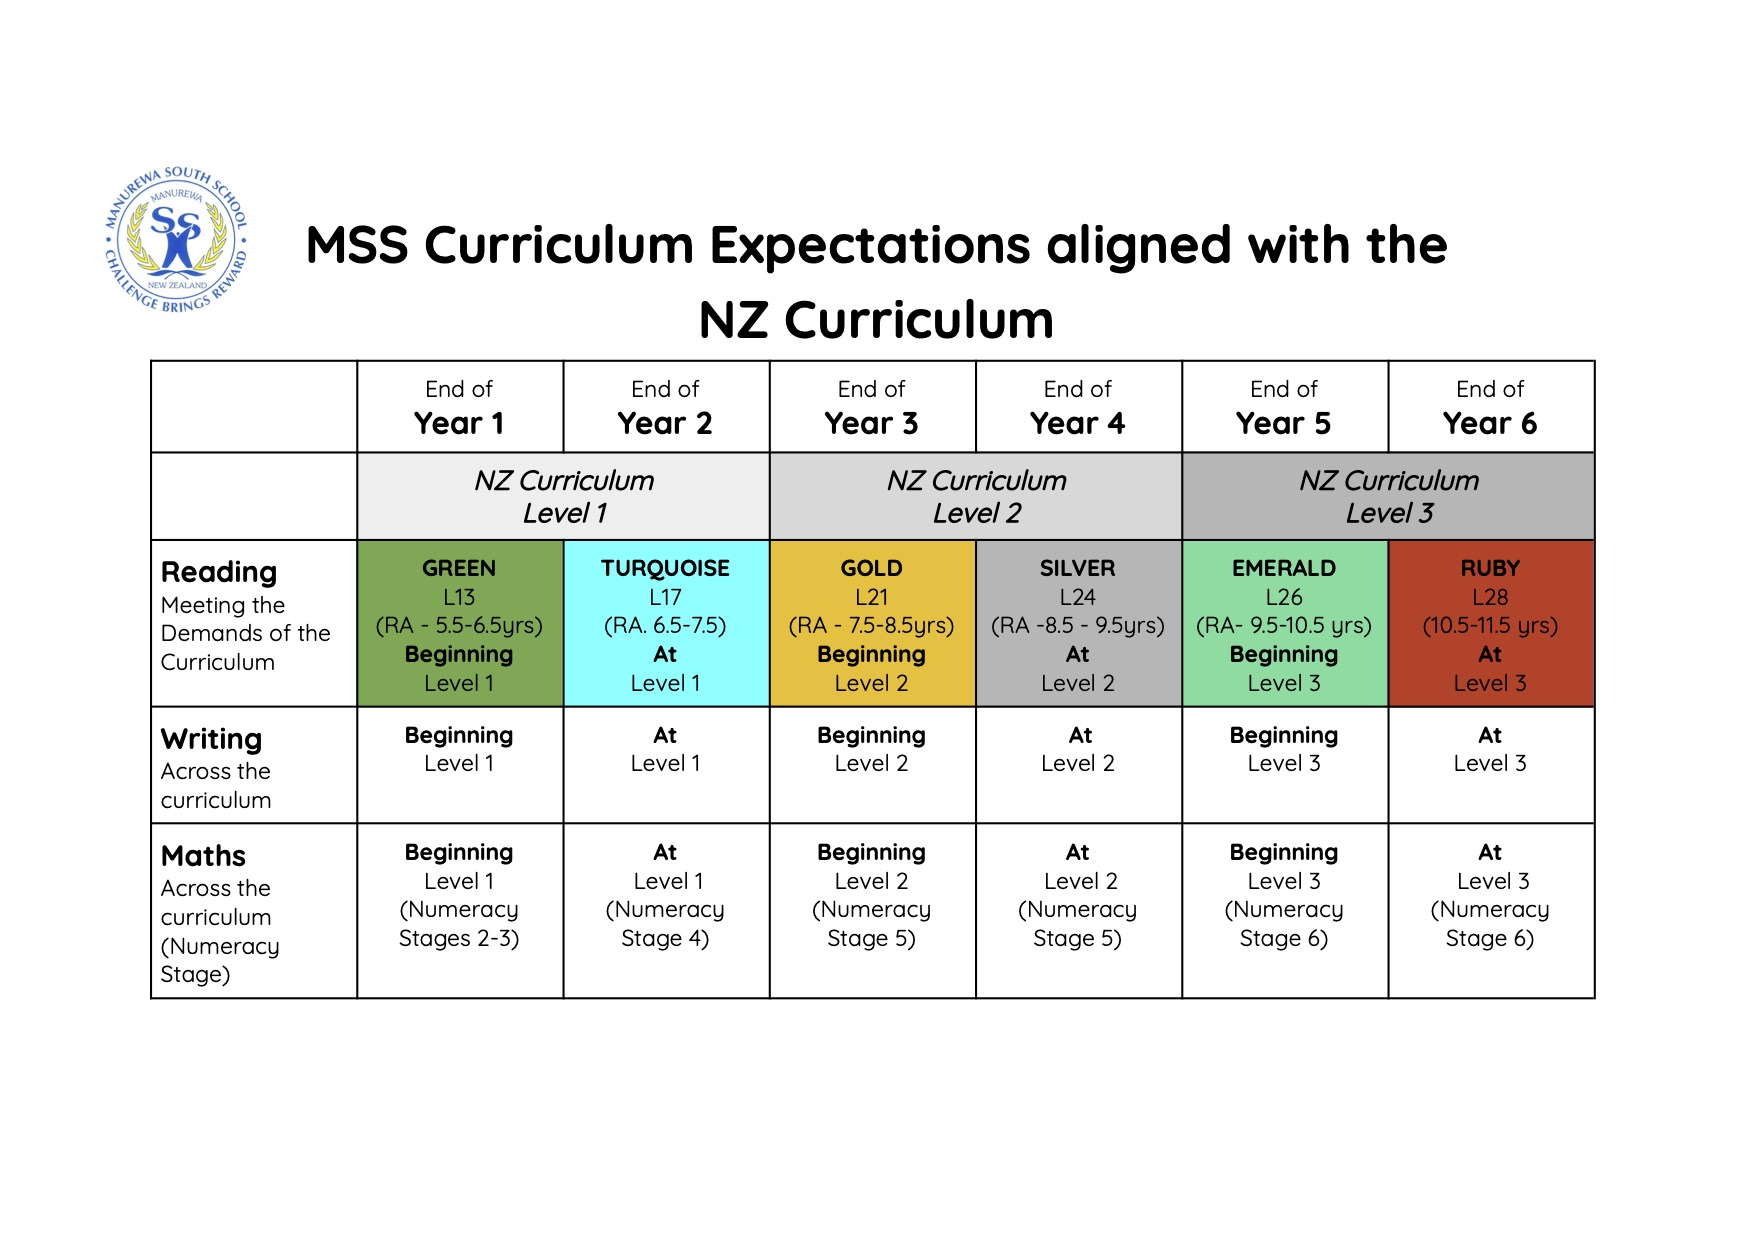 MSS Curriculum Expectations aligned to the NZ Curriculum